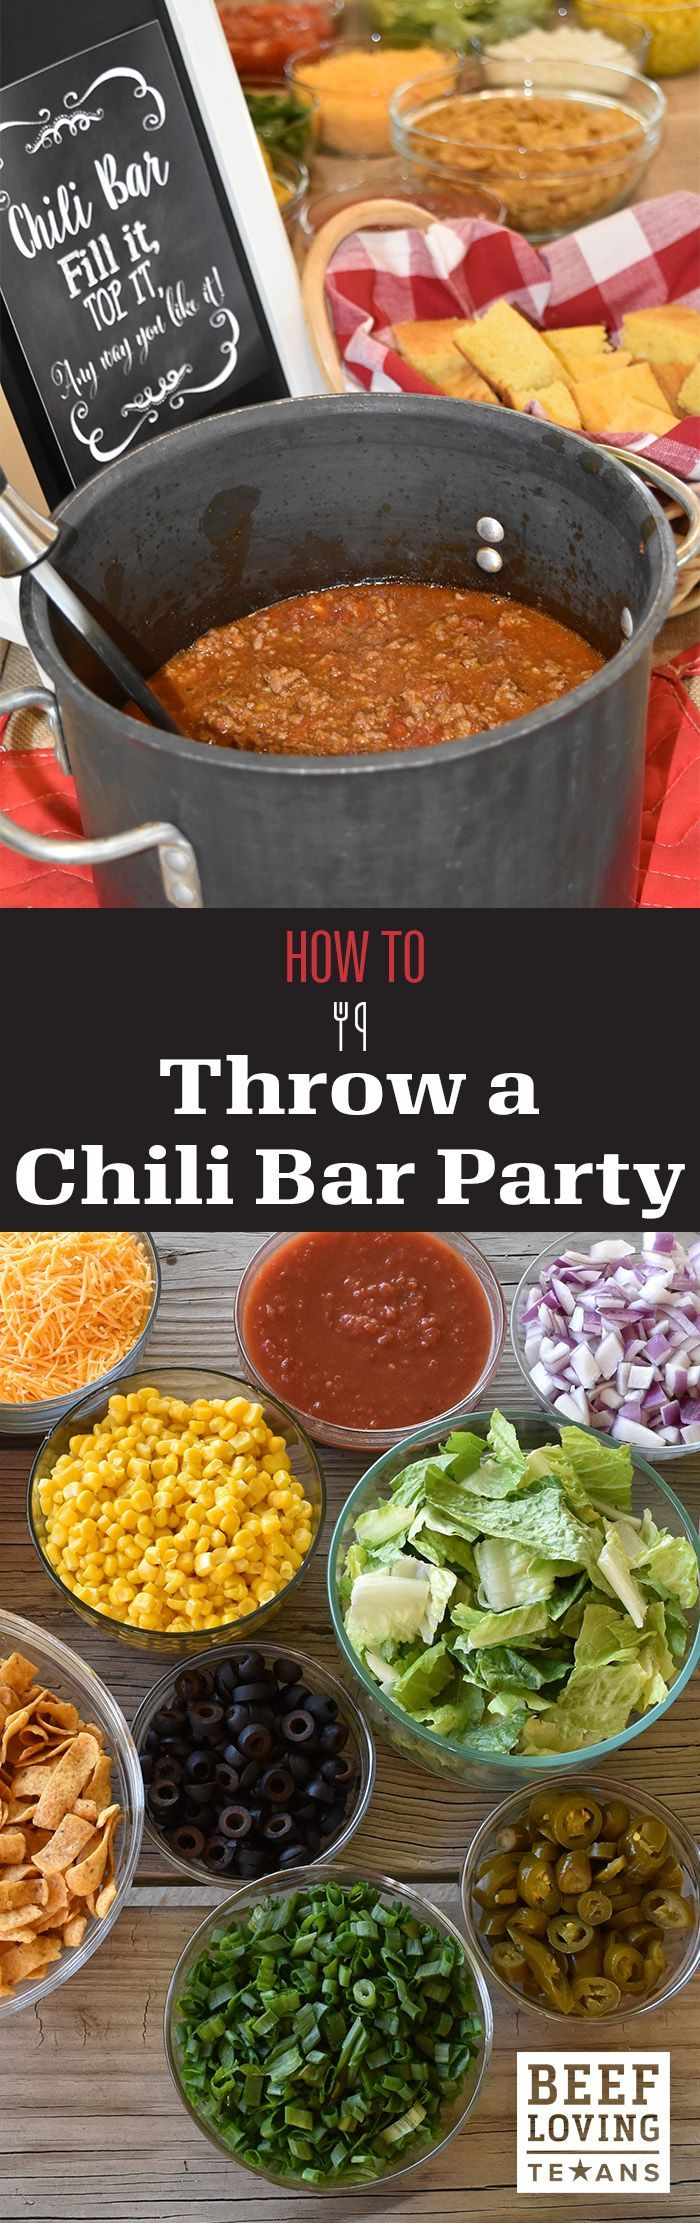 #entertaining #because #perfect #doesnt #party #super #chili #throw #learn #crowd #just #mean #over #bowl #forJust because Super Bowl is over, doesn't mean entertaining for a crowd is. Learn how to throw the perfect chili bar party. #chilibar